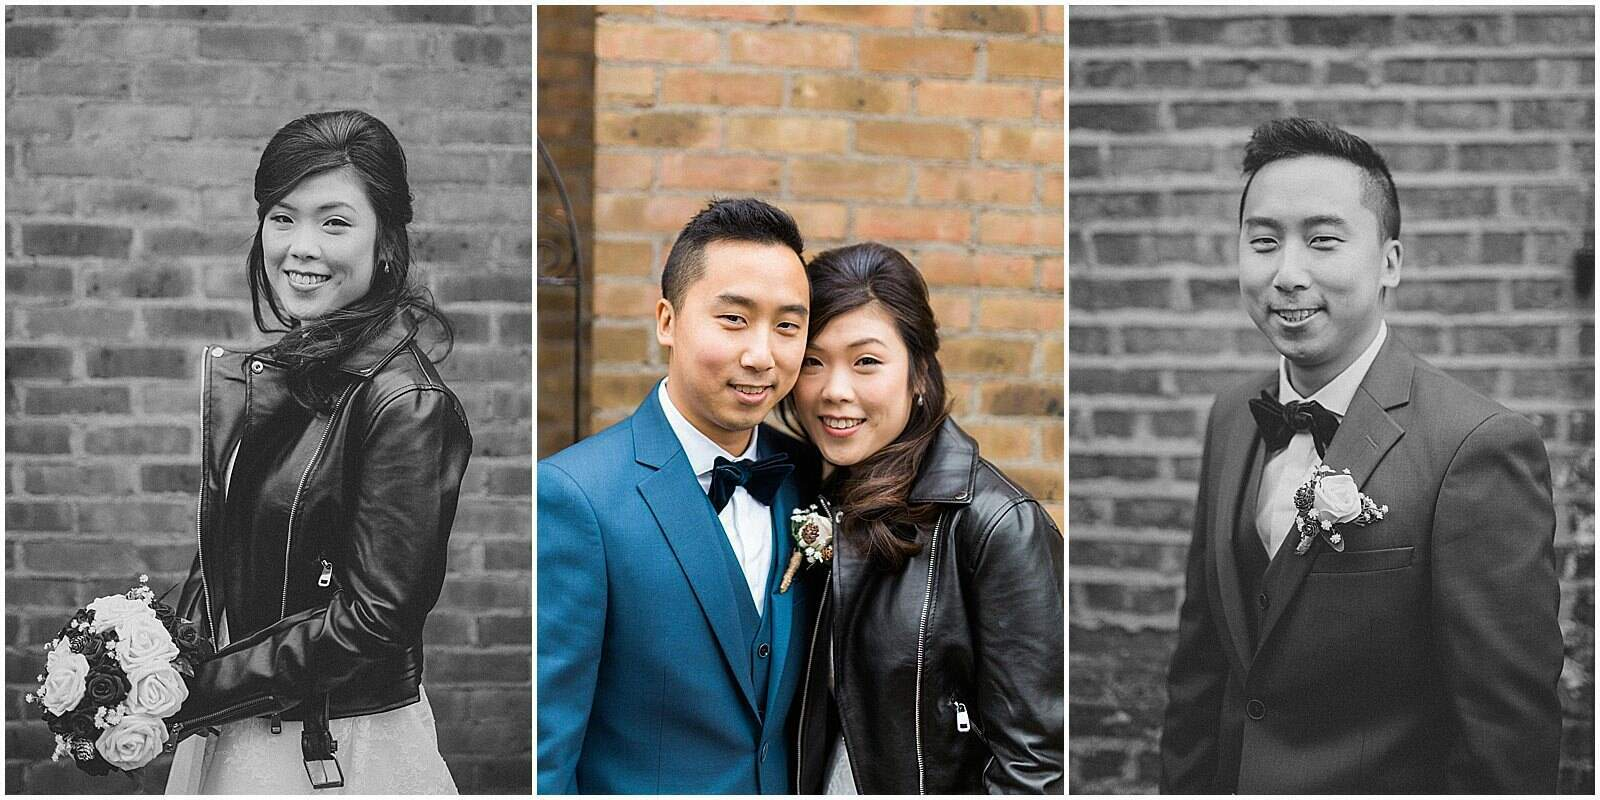 Sandy + Shekman - Elopement in Dublin City 1